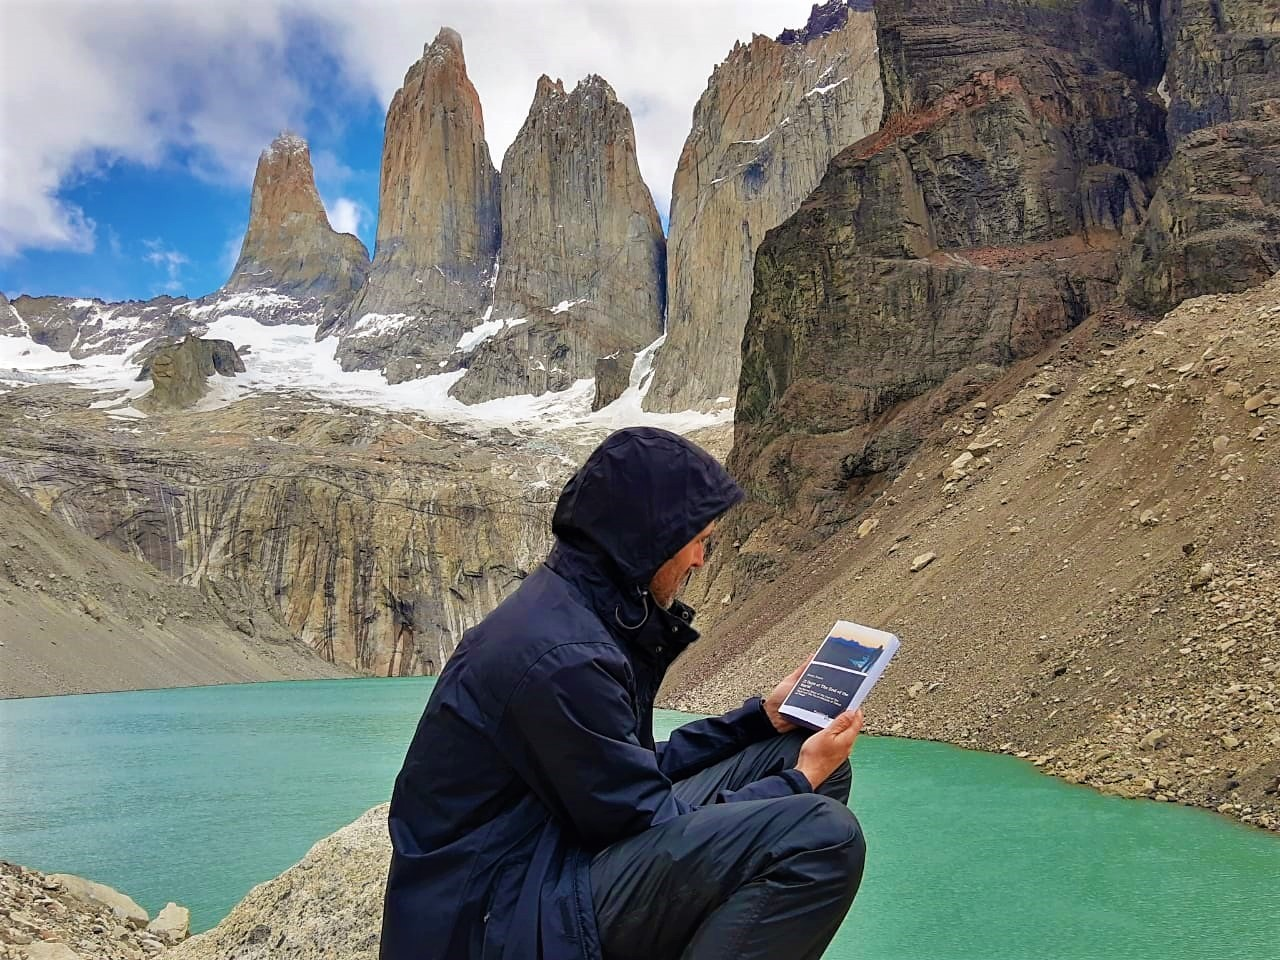 """A wonderful picture of the book """"21 Days at The End of The World"""" in Torres del Paine – Tierra del Fuego, Chile. In 2013 Torres del Paine was elected and considered the 8th wonder of the world. It is in this mystical place that the main character of the book meets Alnitak – the Guanacos protector, a character full of magic and mysteries. Photo by Mauro Molina (Brazil)."""